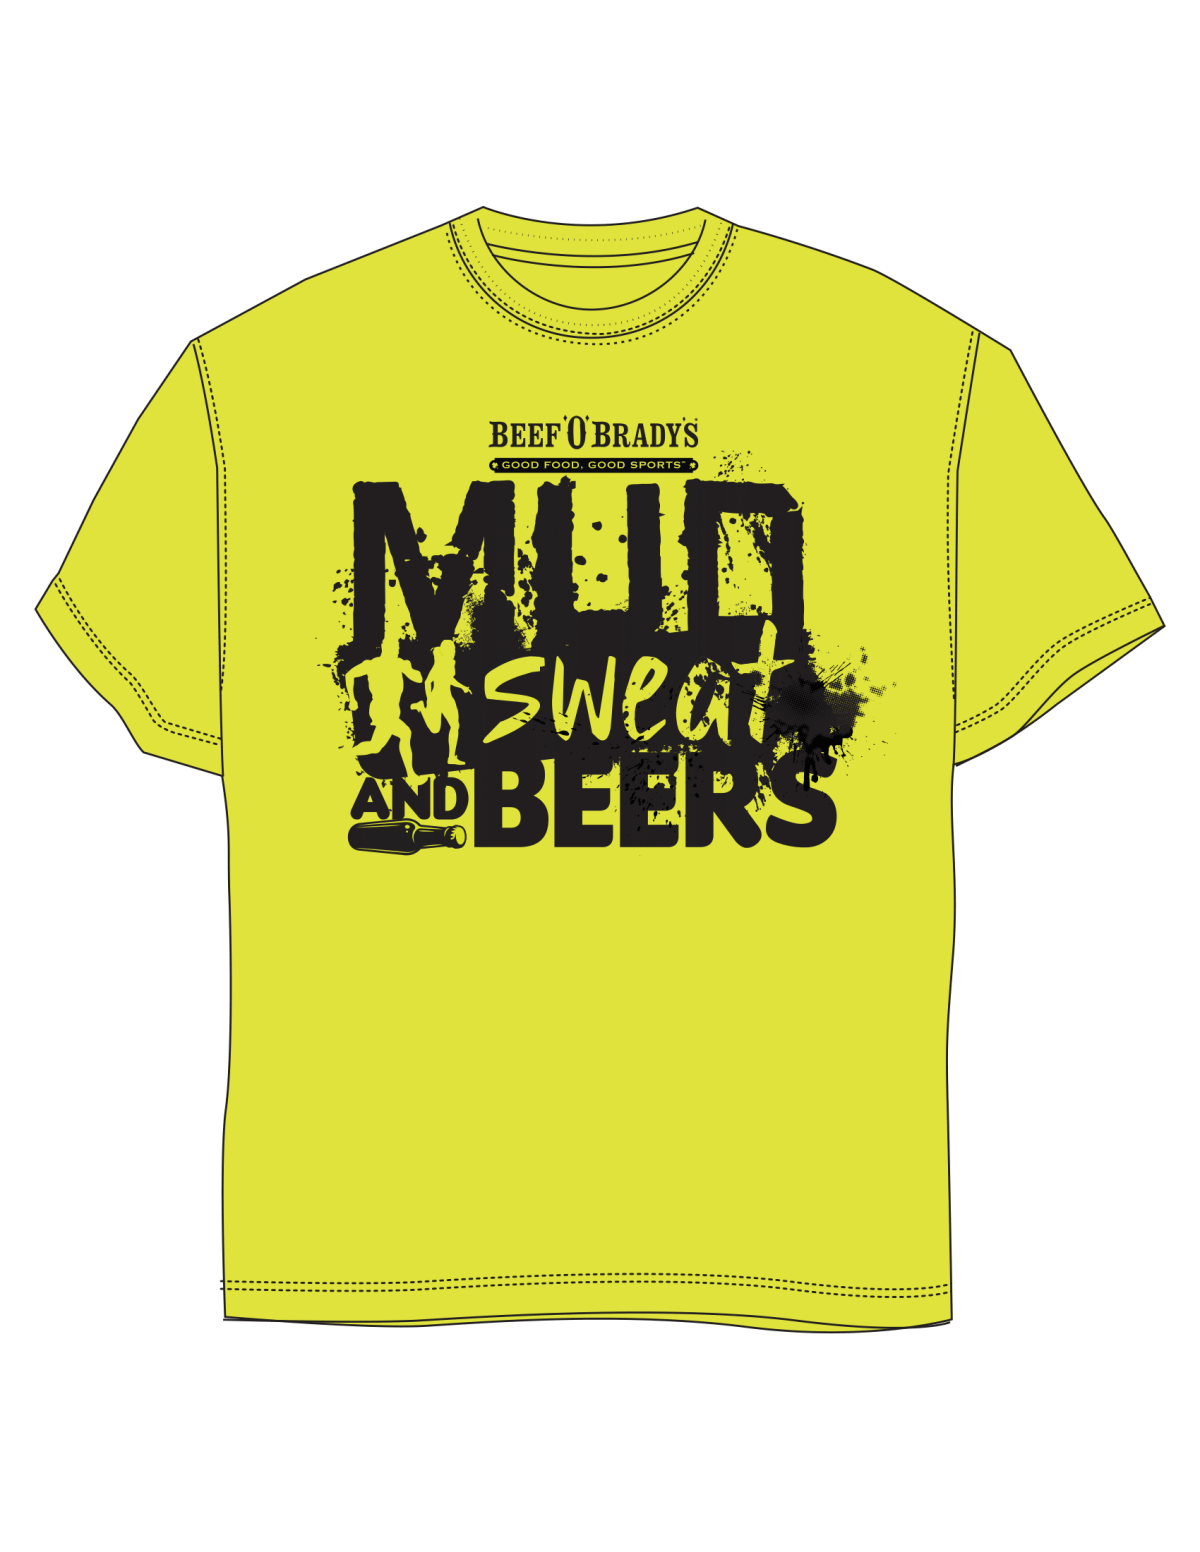 Mud, Sweat, and Beers- Mud Run Tees